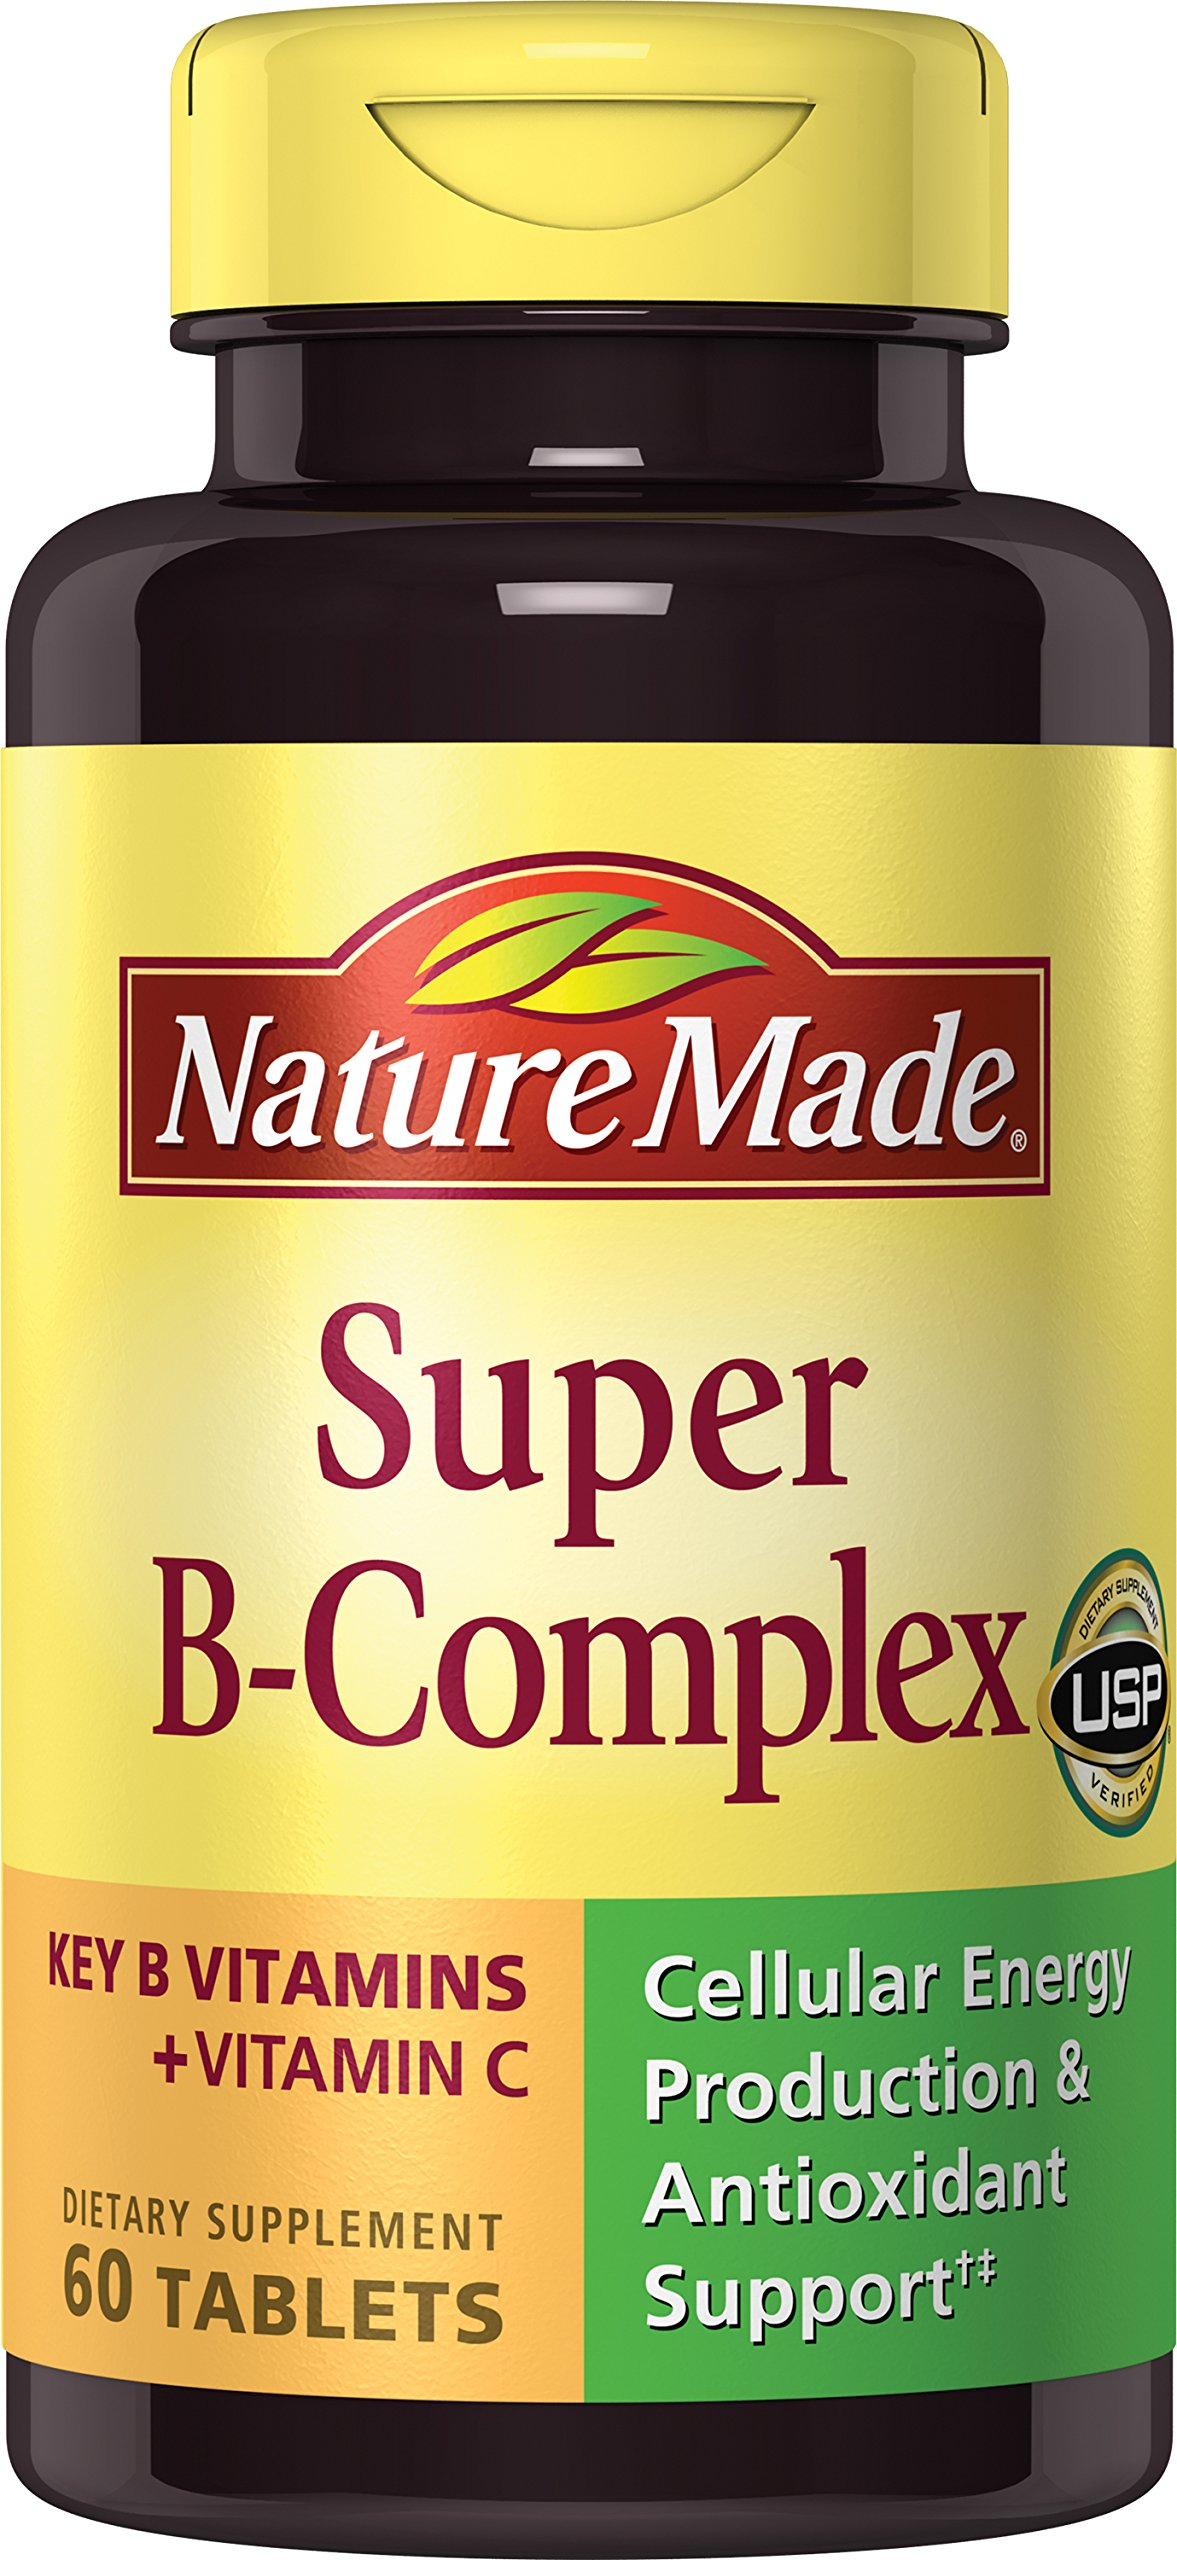 Nature Made Super B Complex + Vitamin C Tablets, 60 Count